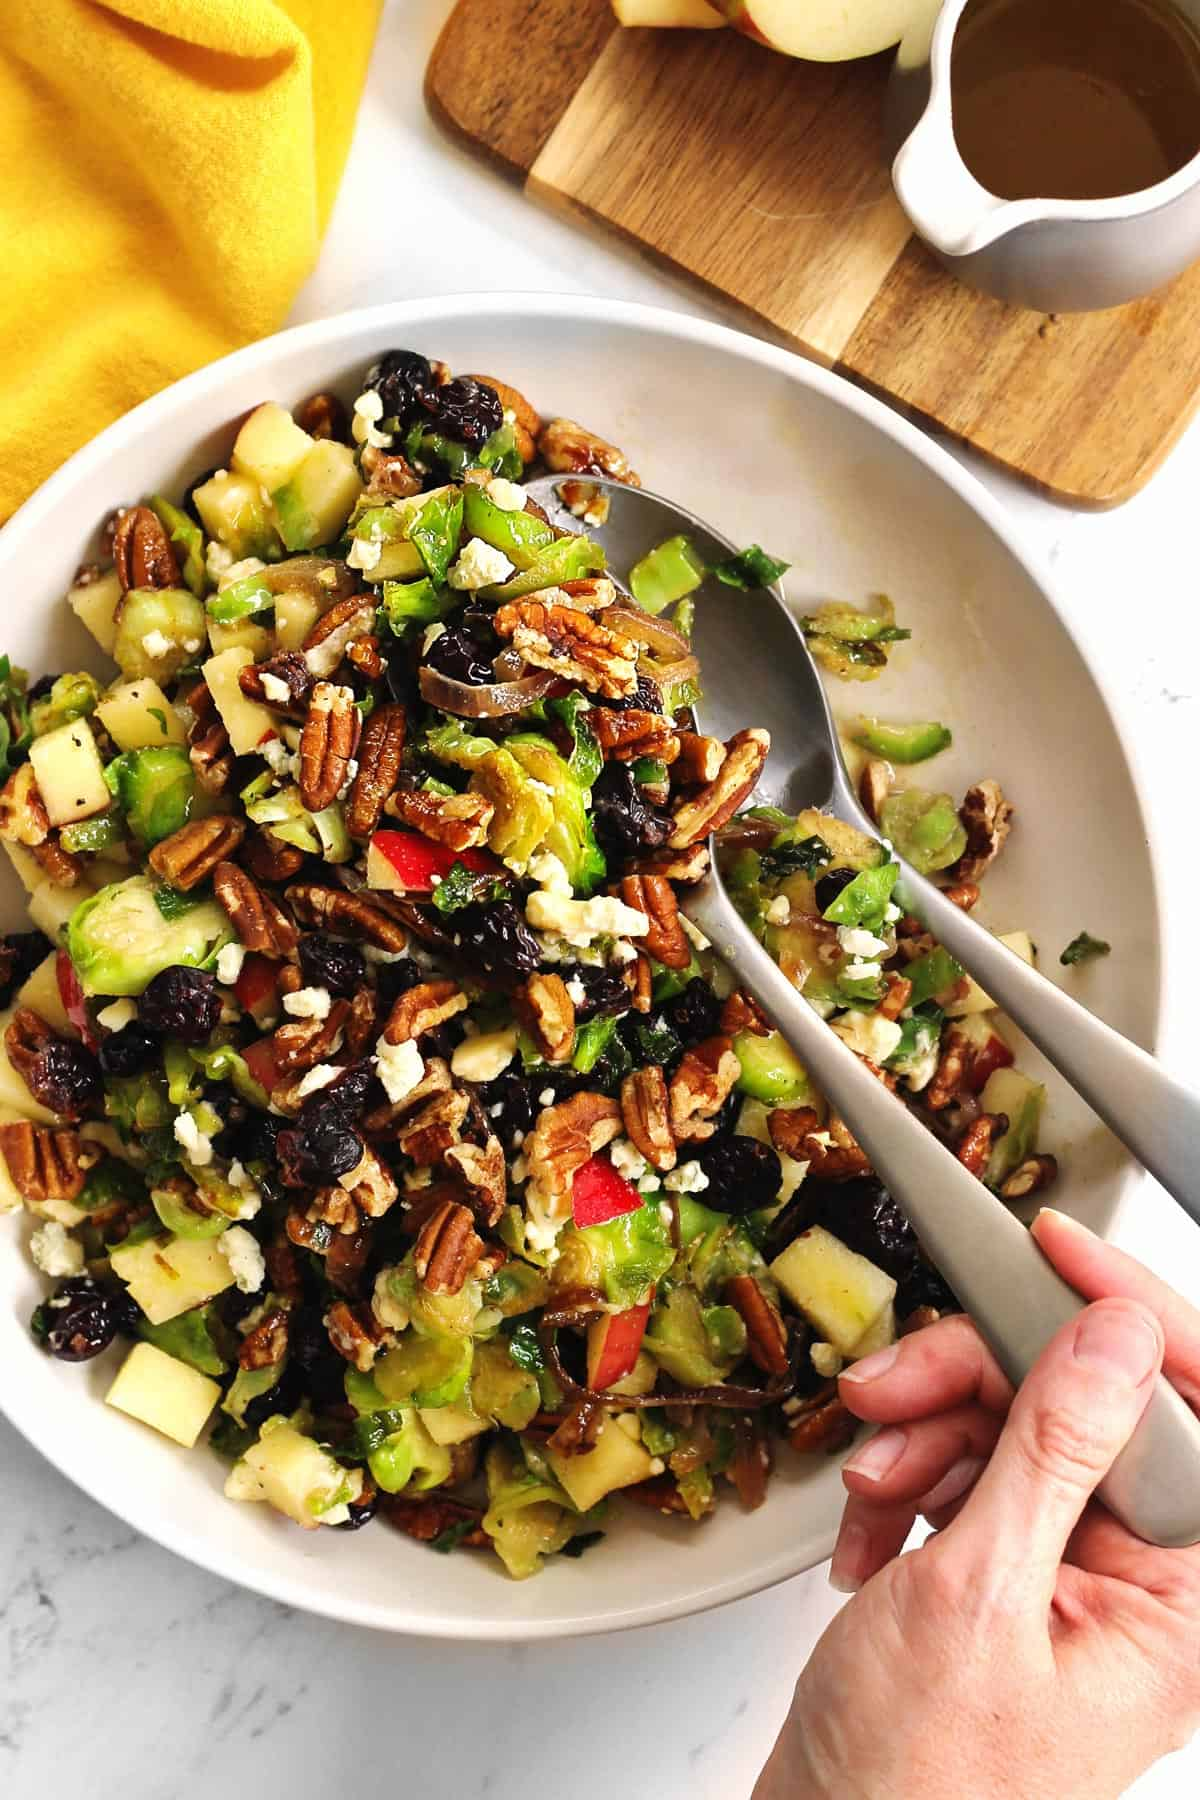 Warm brussels sprout salad being scooped with a spoon